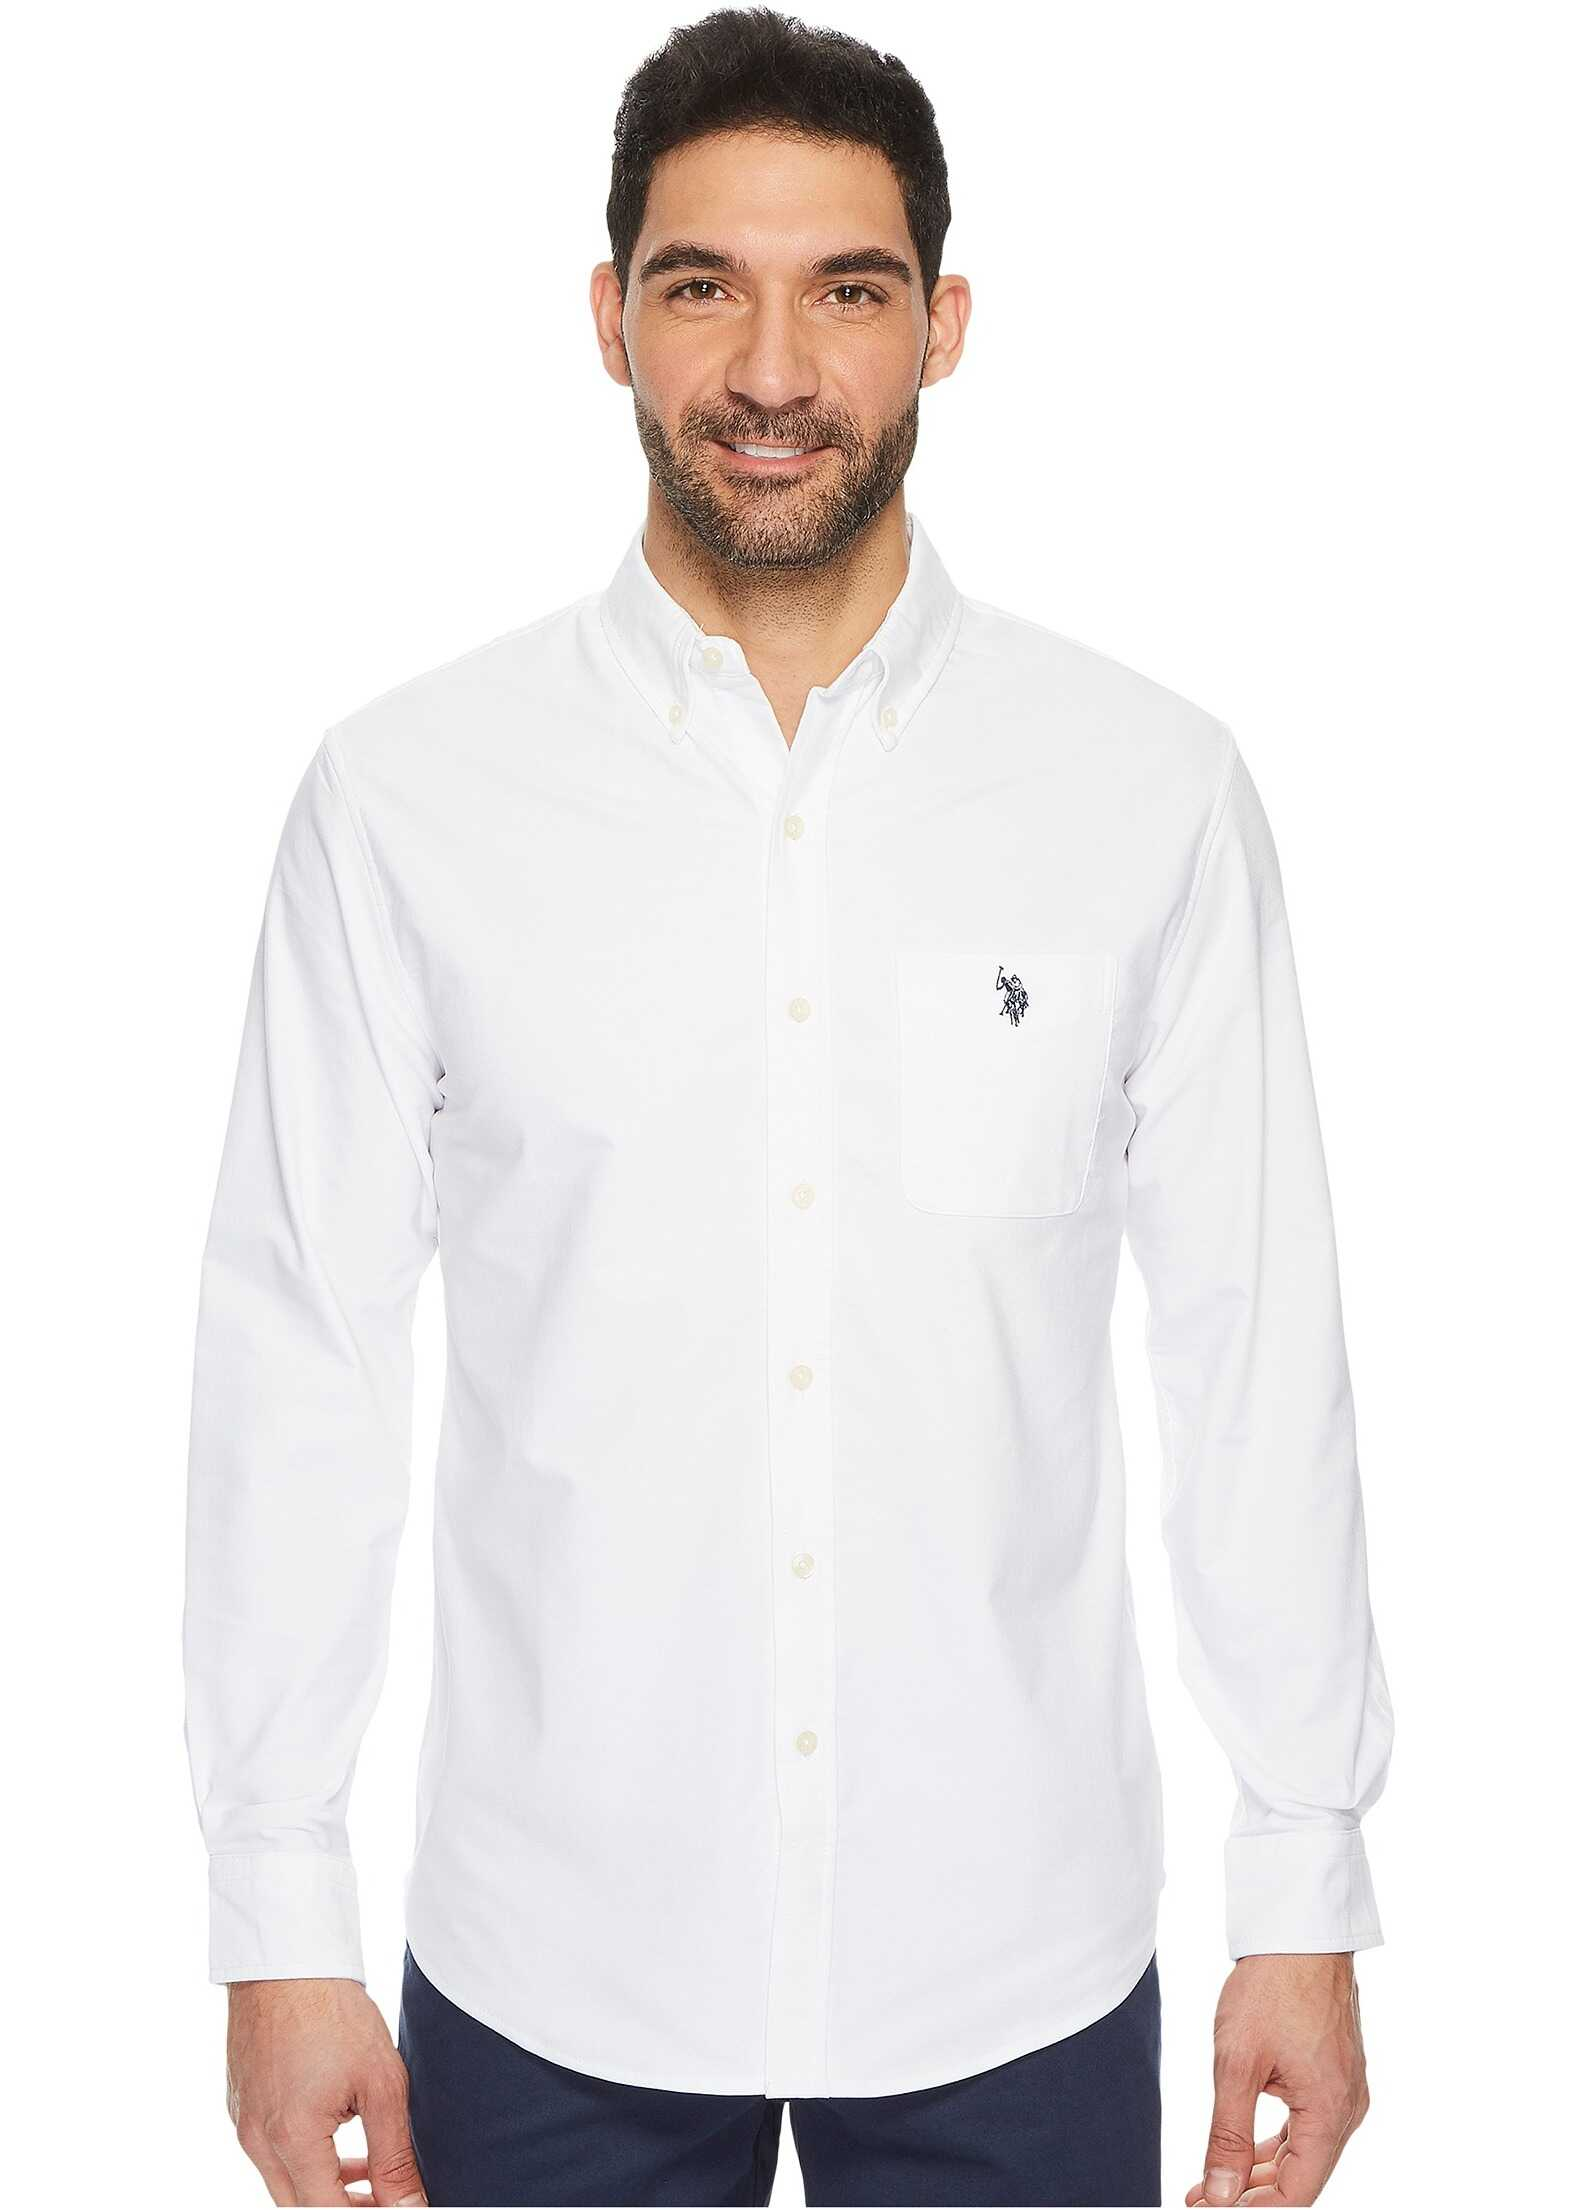 U.S. POLO ASSN. Classic Fit Long Sleeve Sport Shirt Optic White